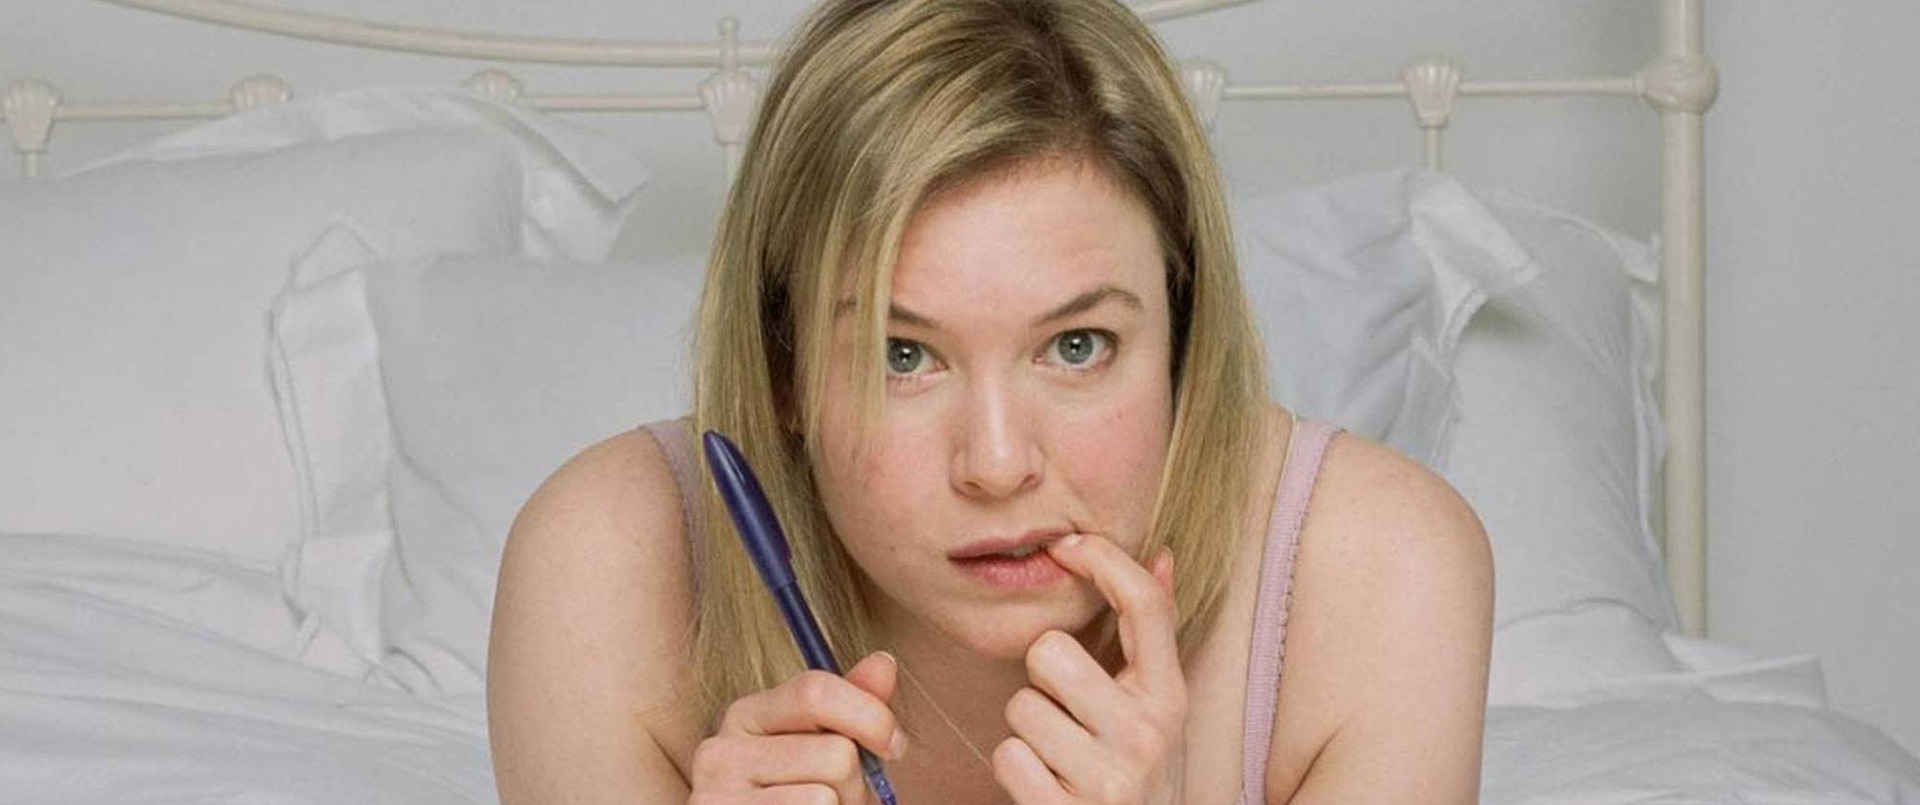 Bridget Jones «tricked» her lips and face